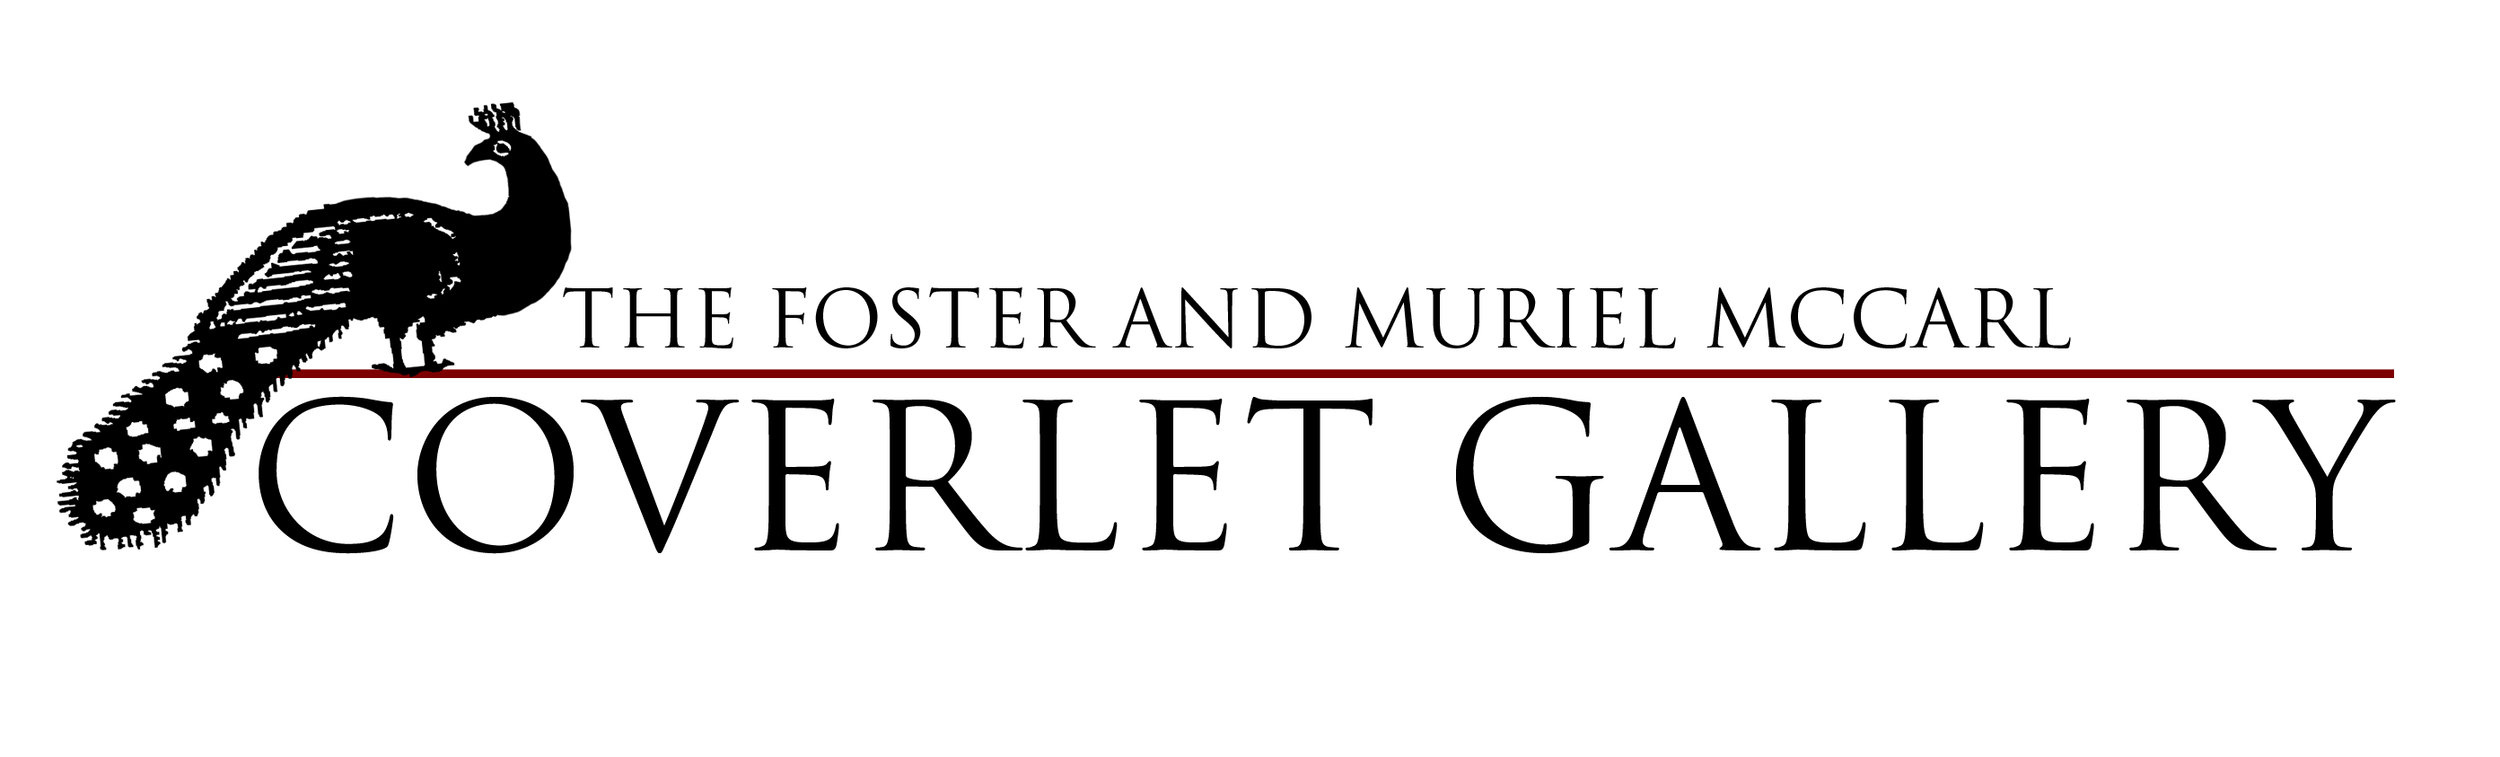 The Foster and Muriel McCarl Coverlet Gallery, Saint Vincent College